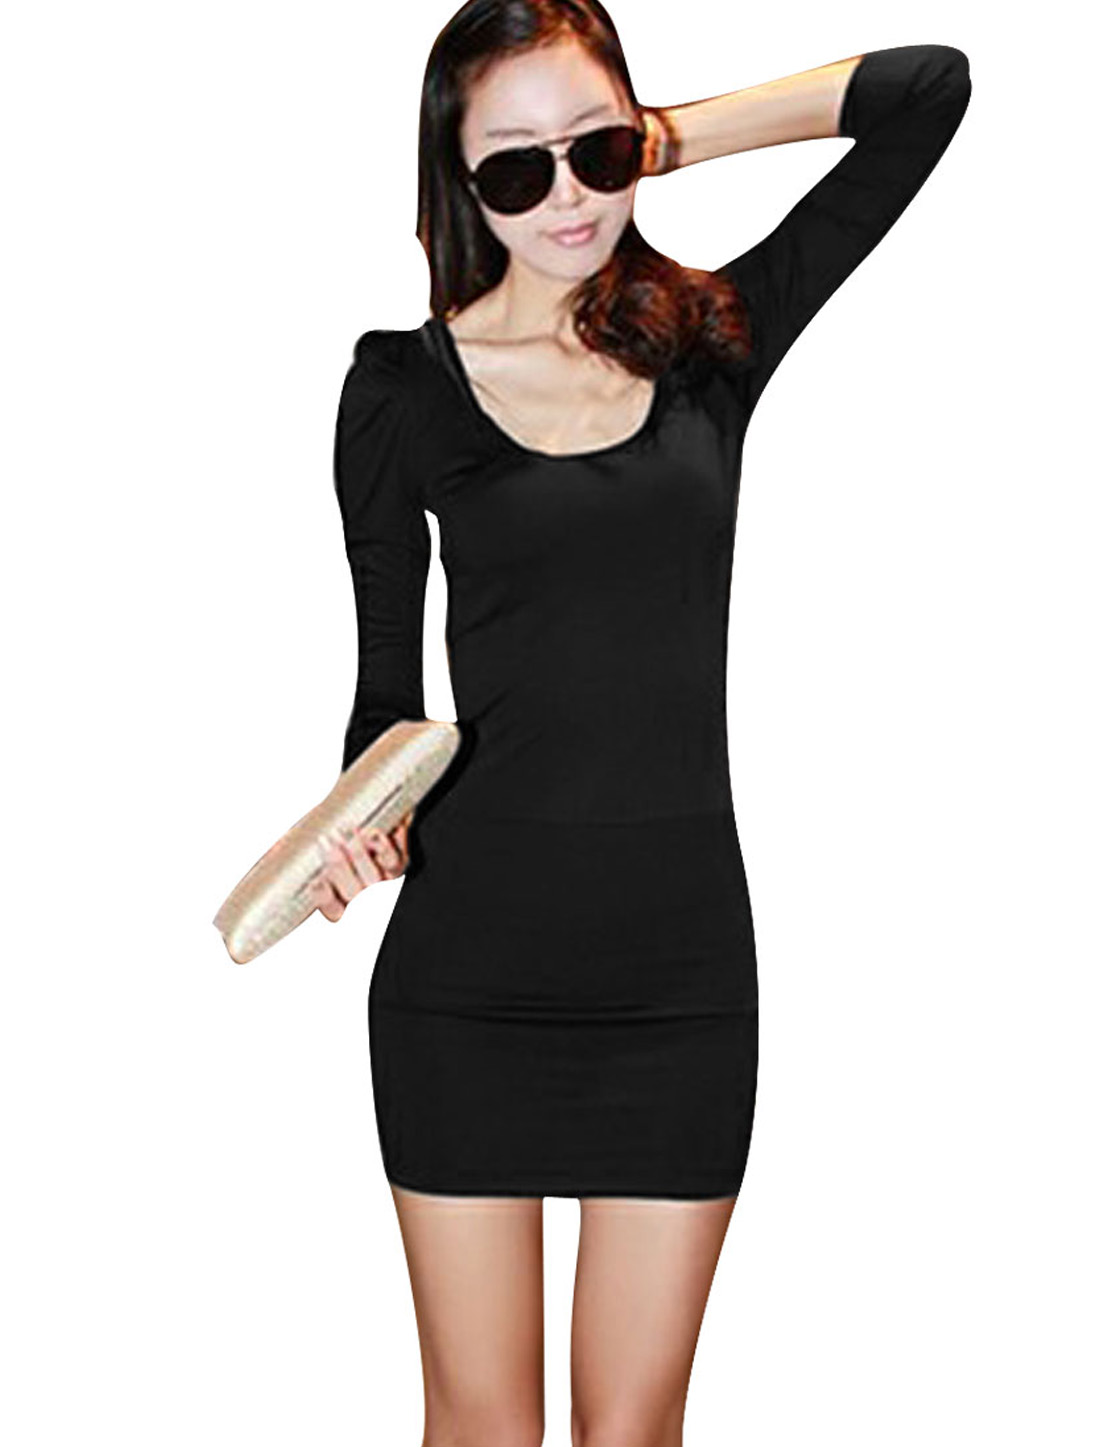 Lady Long Sleeves Mesh Detail Round Neck Form-fitting Black Dress XS